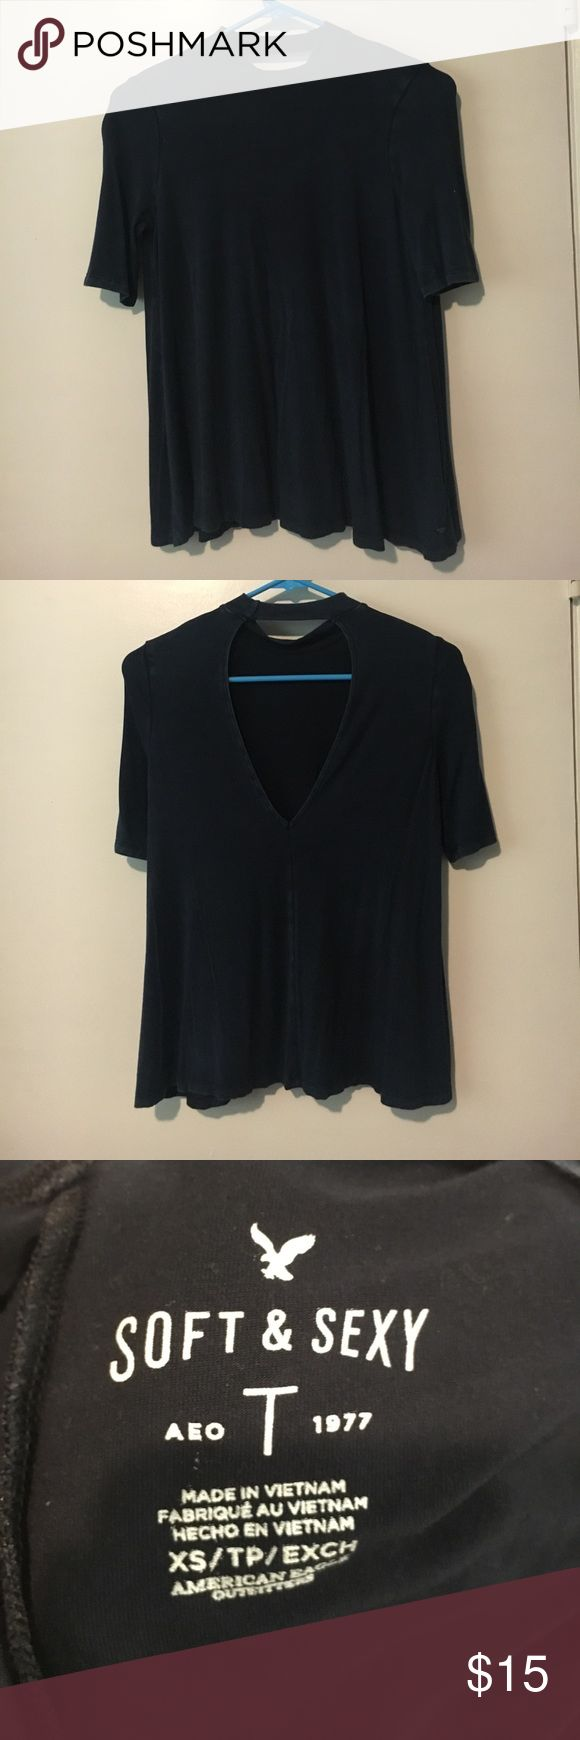 American Eagle Shirt Dark Blue American Eagle shirt with open back; never worn American Eagle Outfitters Tops Blouses